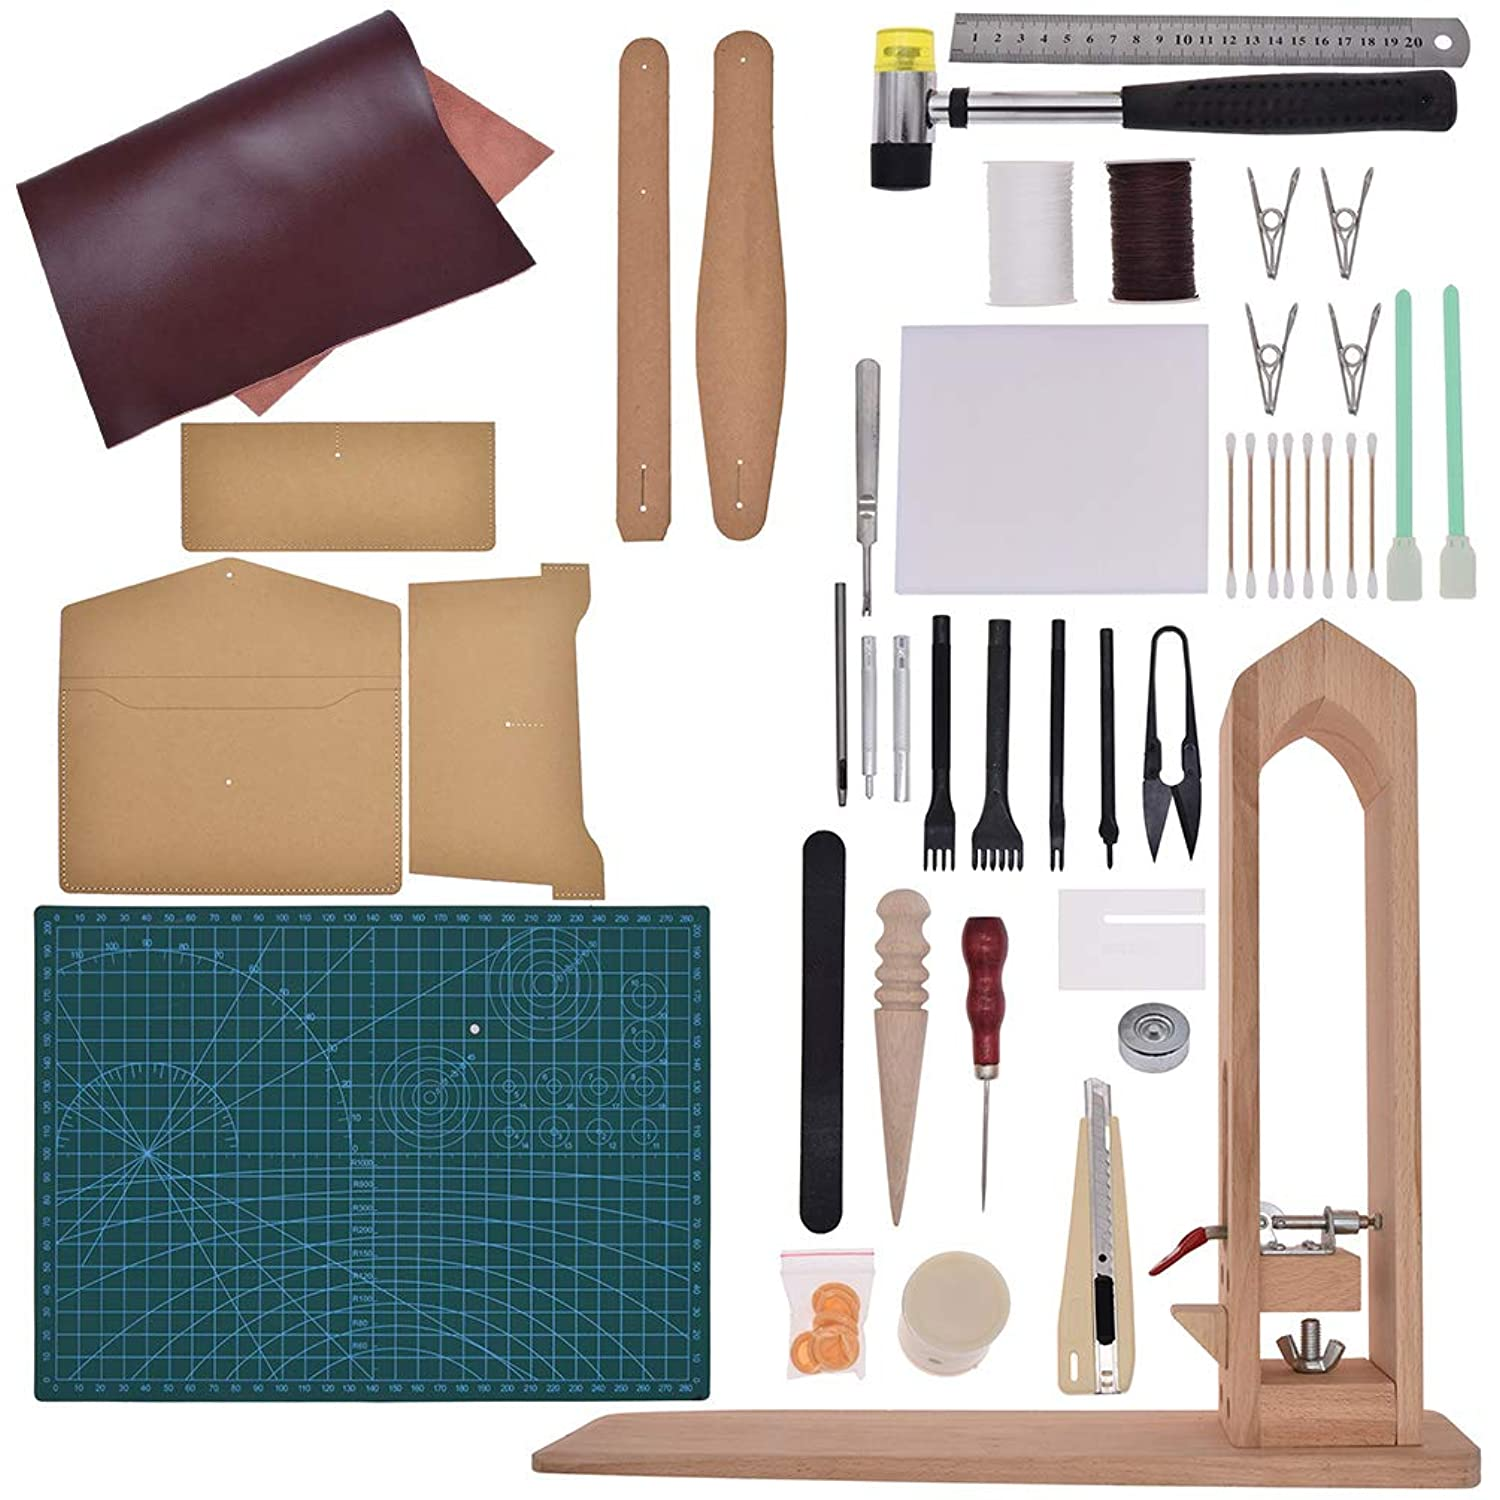 CHZIMADE 44pcs Leather Working Tools Leathercraft with Leather Stamping Tools, Cutting Mat, Stitching Groover, Prong Punch, Snaps and Rivets Kit, Leather Tooling Kit for DIY (Leather Tools-F)